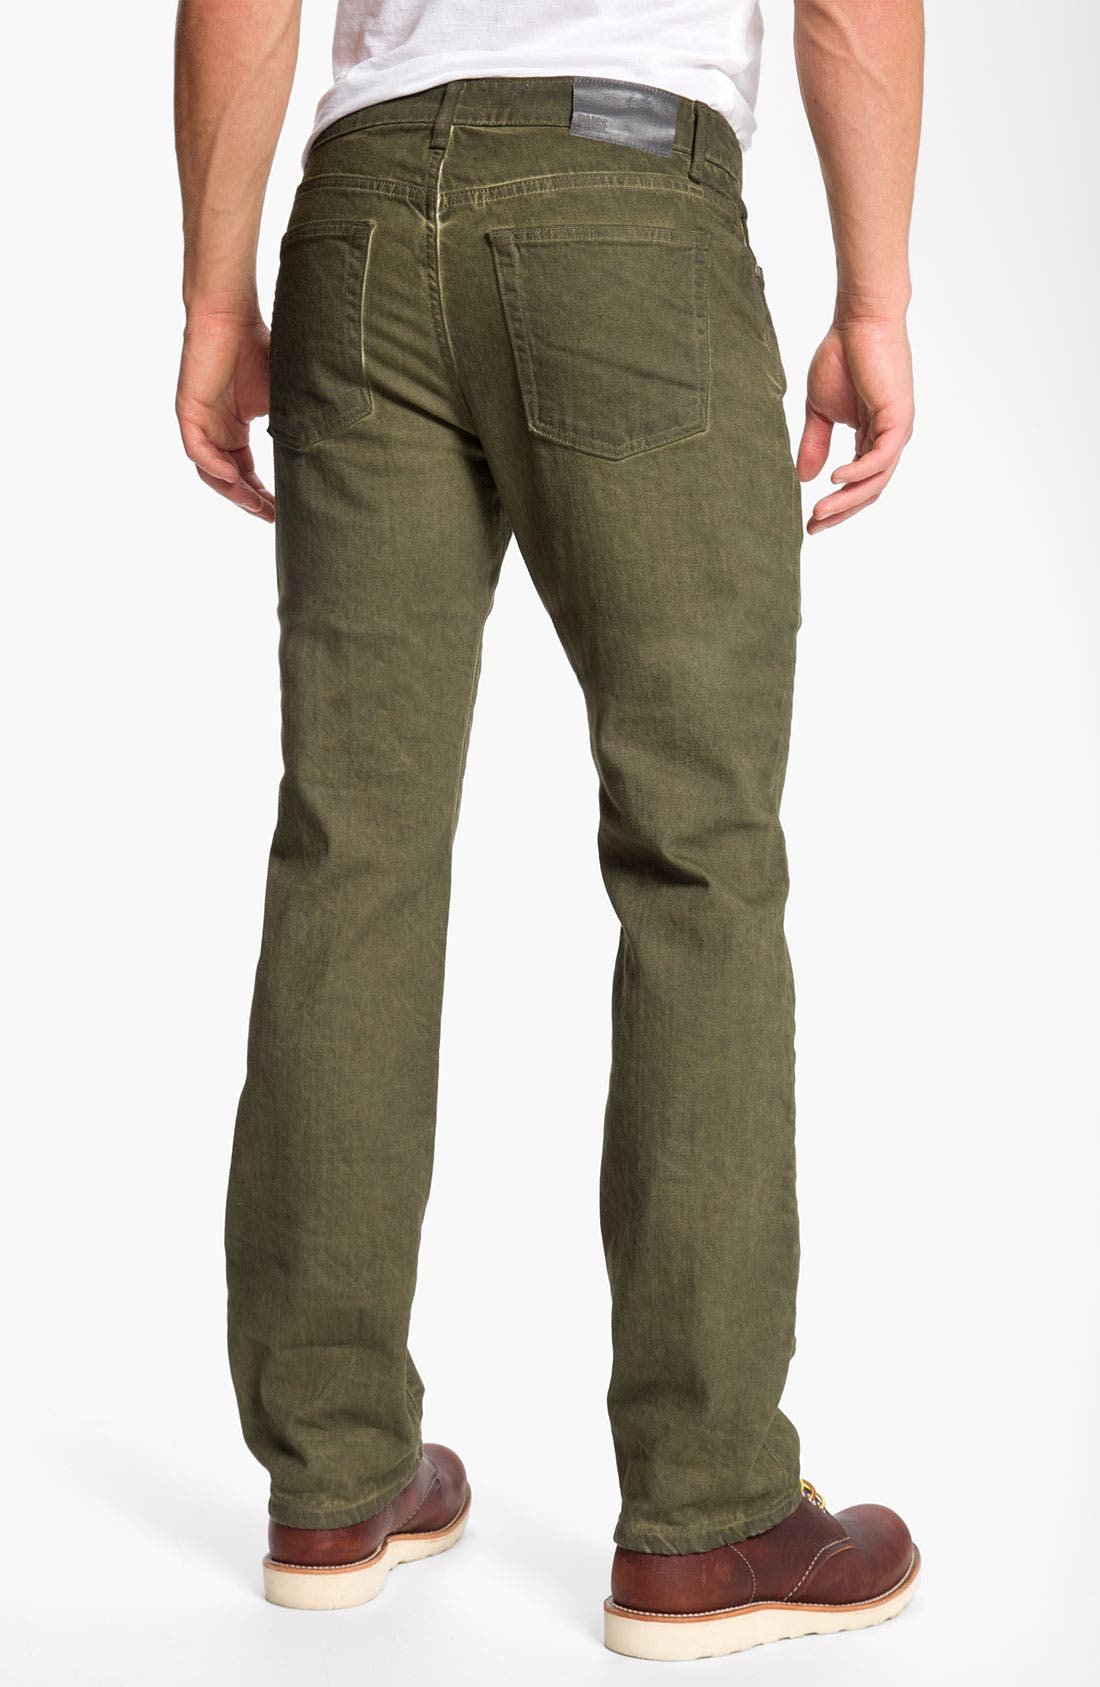 Alternate Image 1 Selected - PAIGE 'Normandie' Straight Leg Jeans (Bayou)